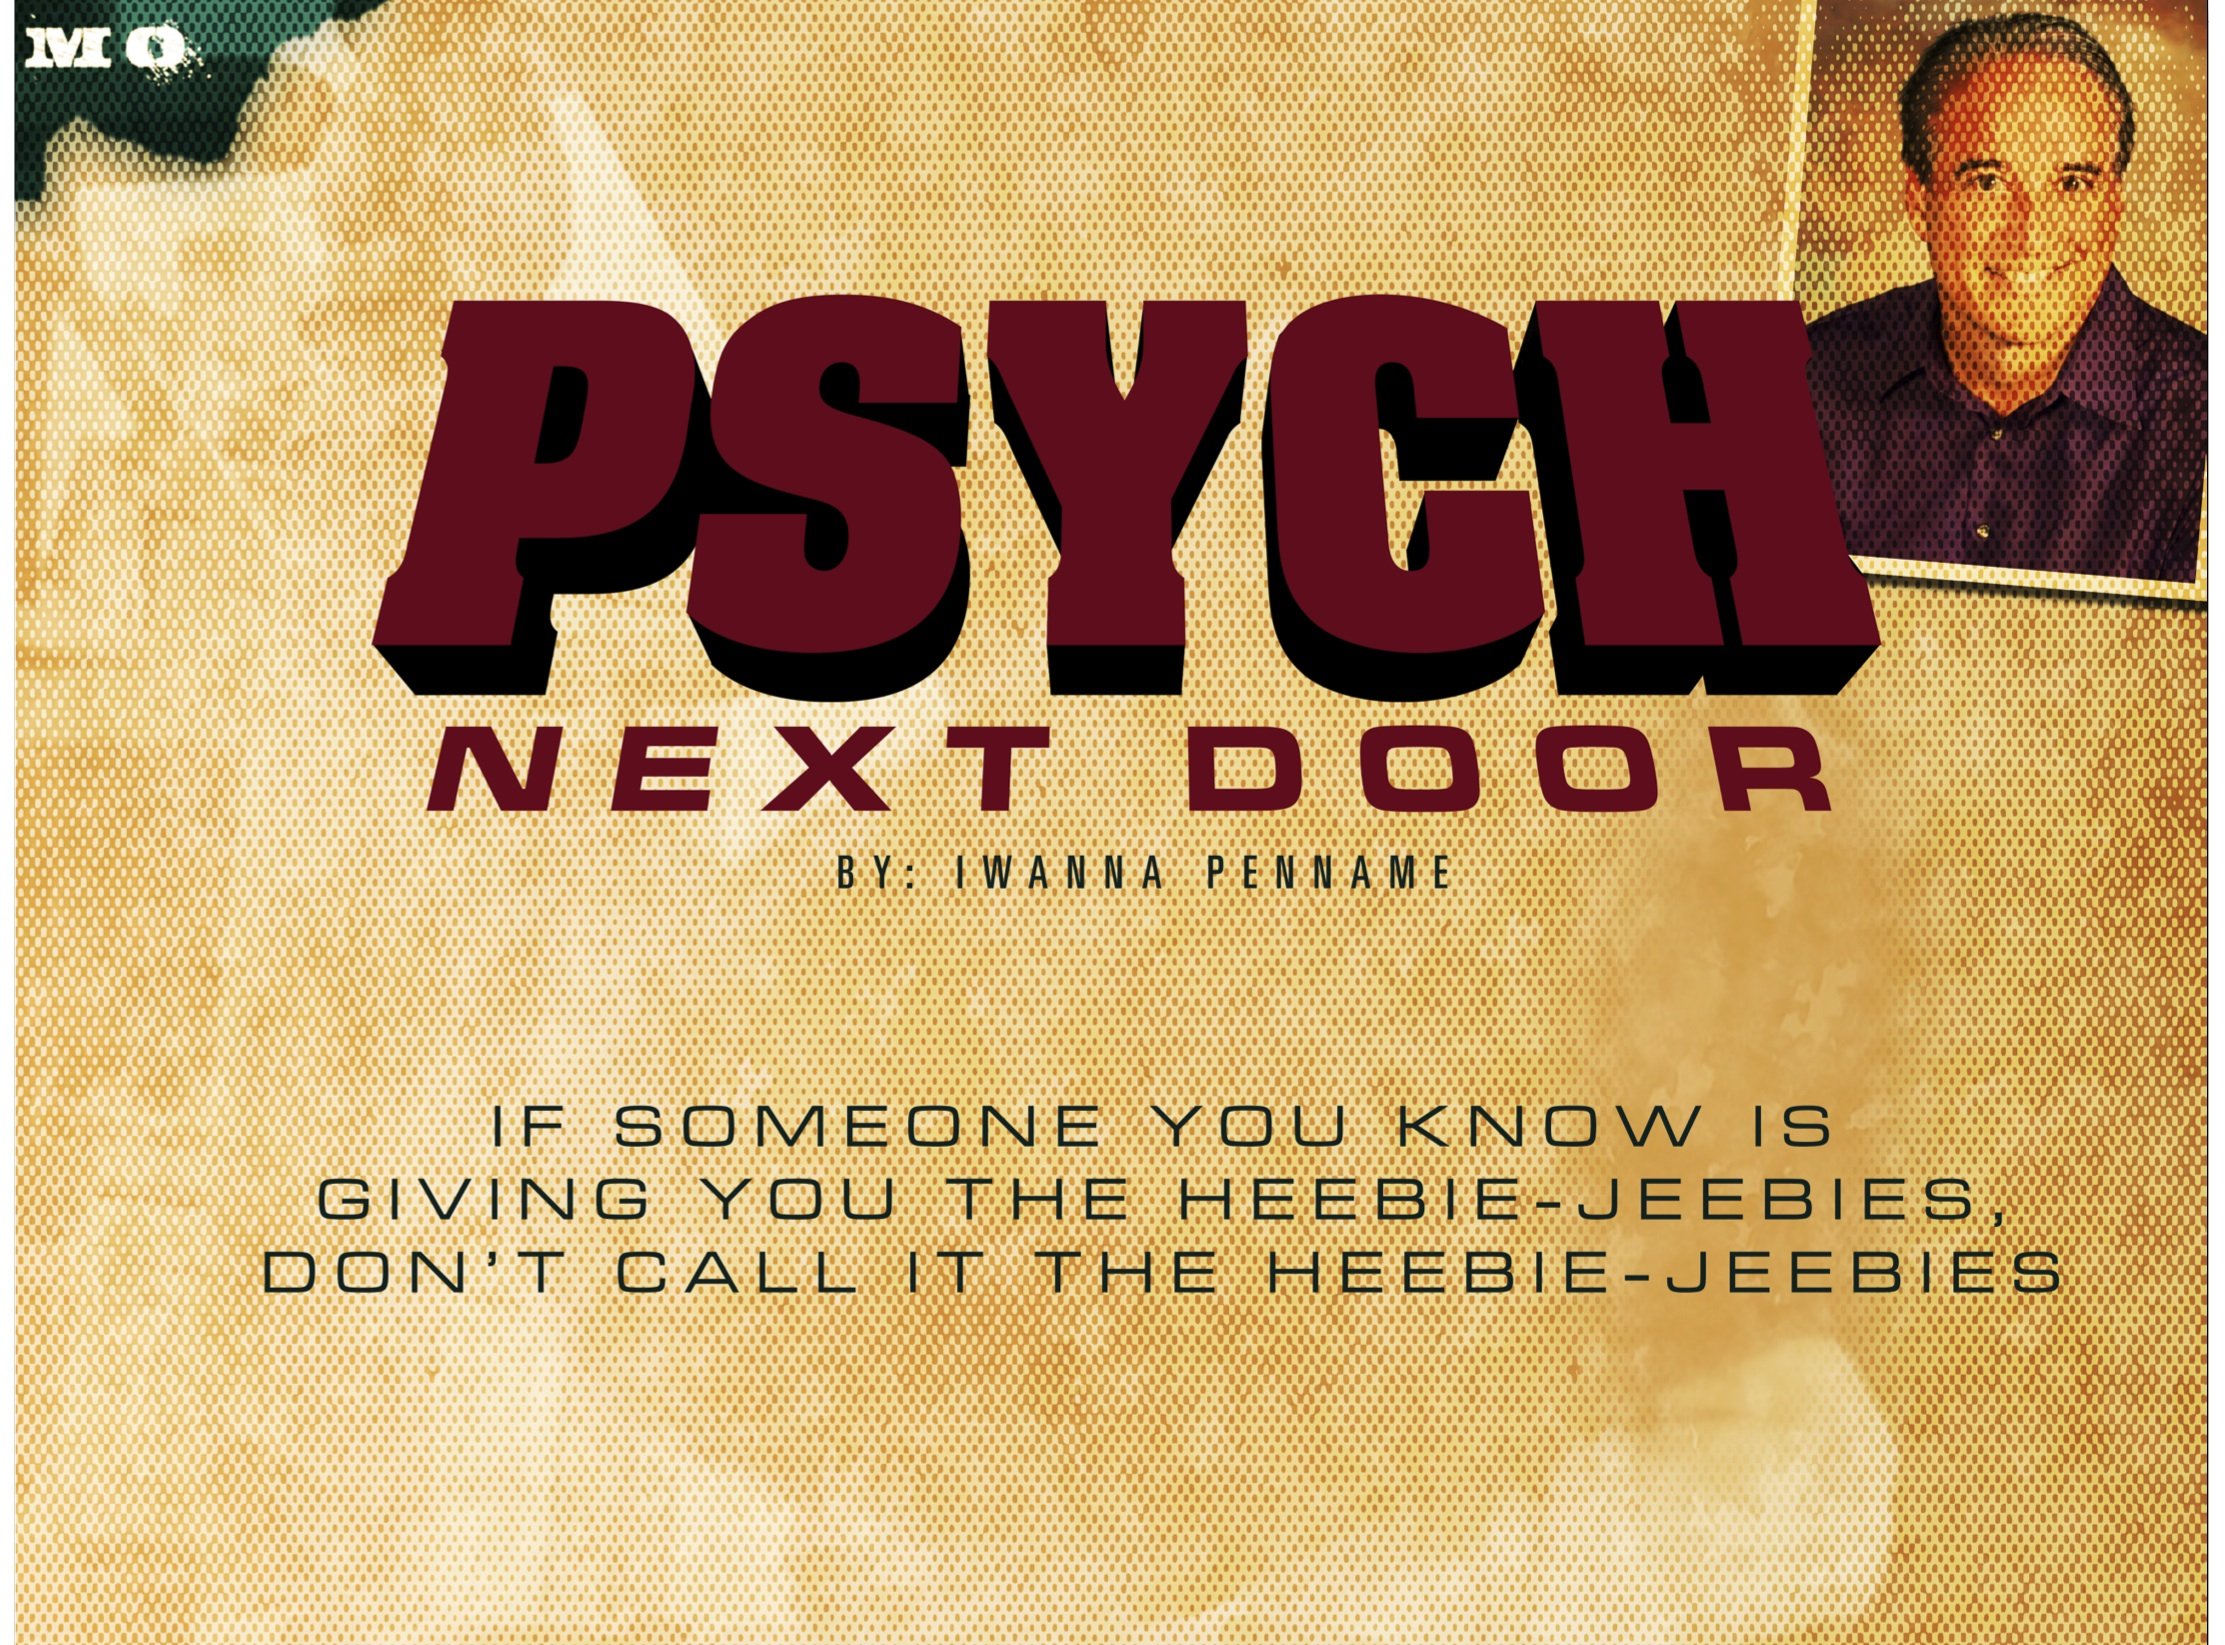 psych next door1.jpg